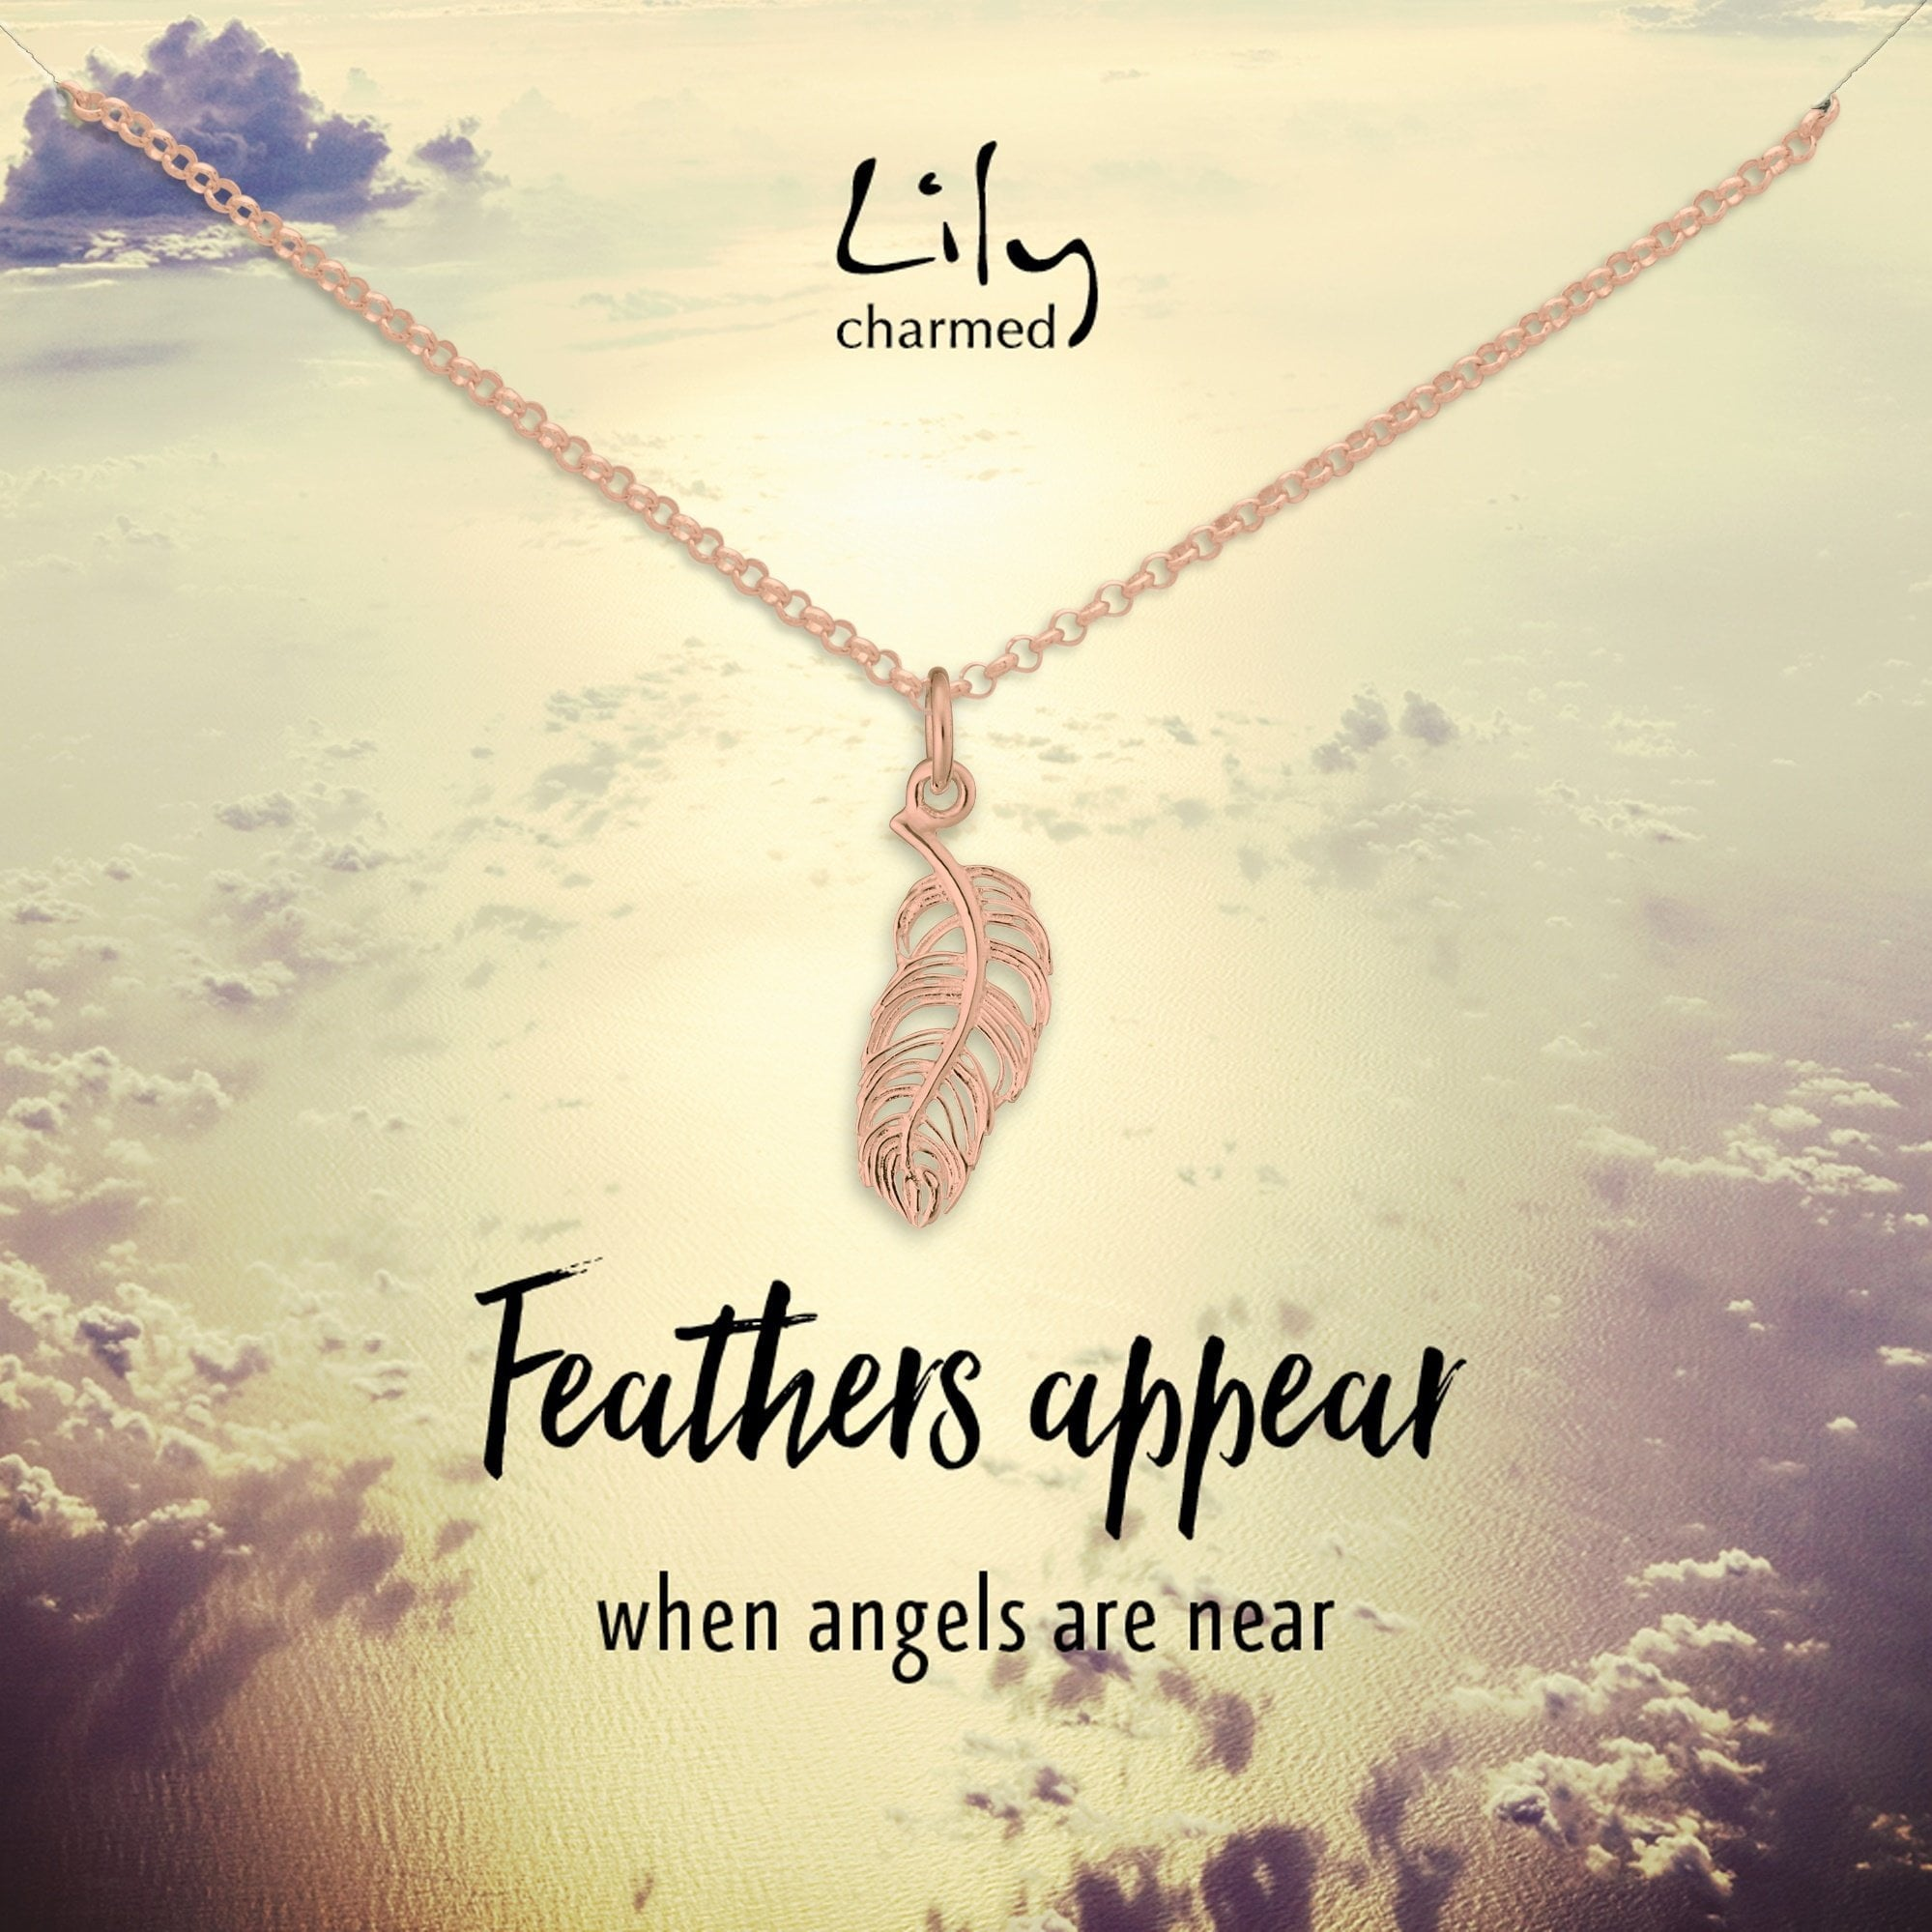 Rose Gold Plated Feather Necklace with 'Feathers Appear' Message